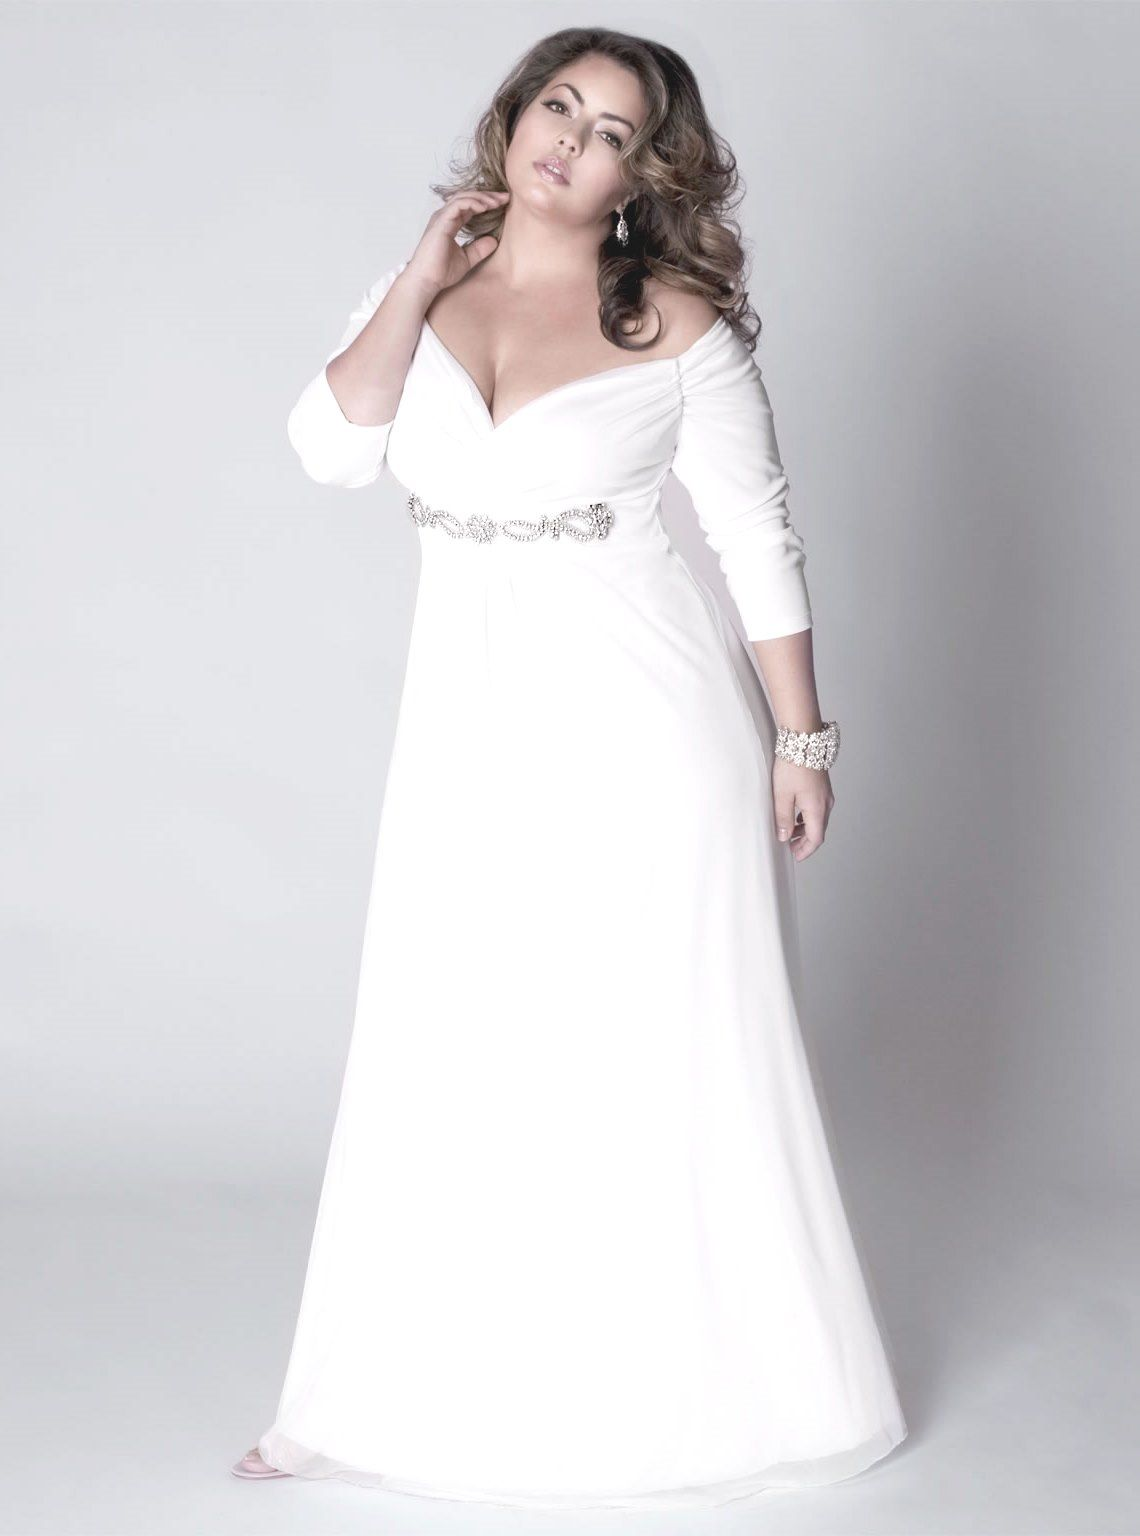 15 plus size wedding dresses to make you look like queen wedding 15 plus size wedding dresses to make you look like queen junglespirit Image collections